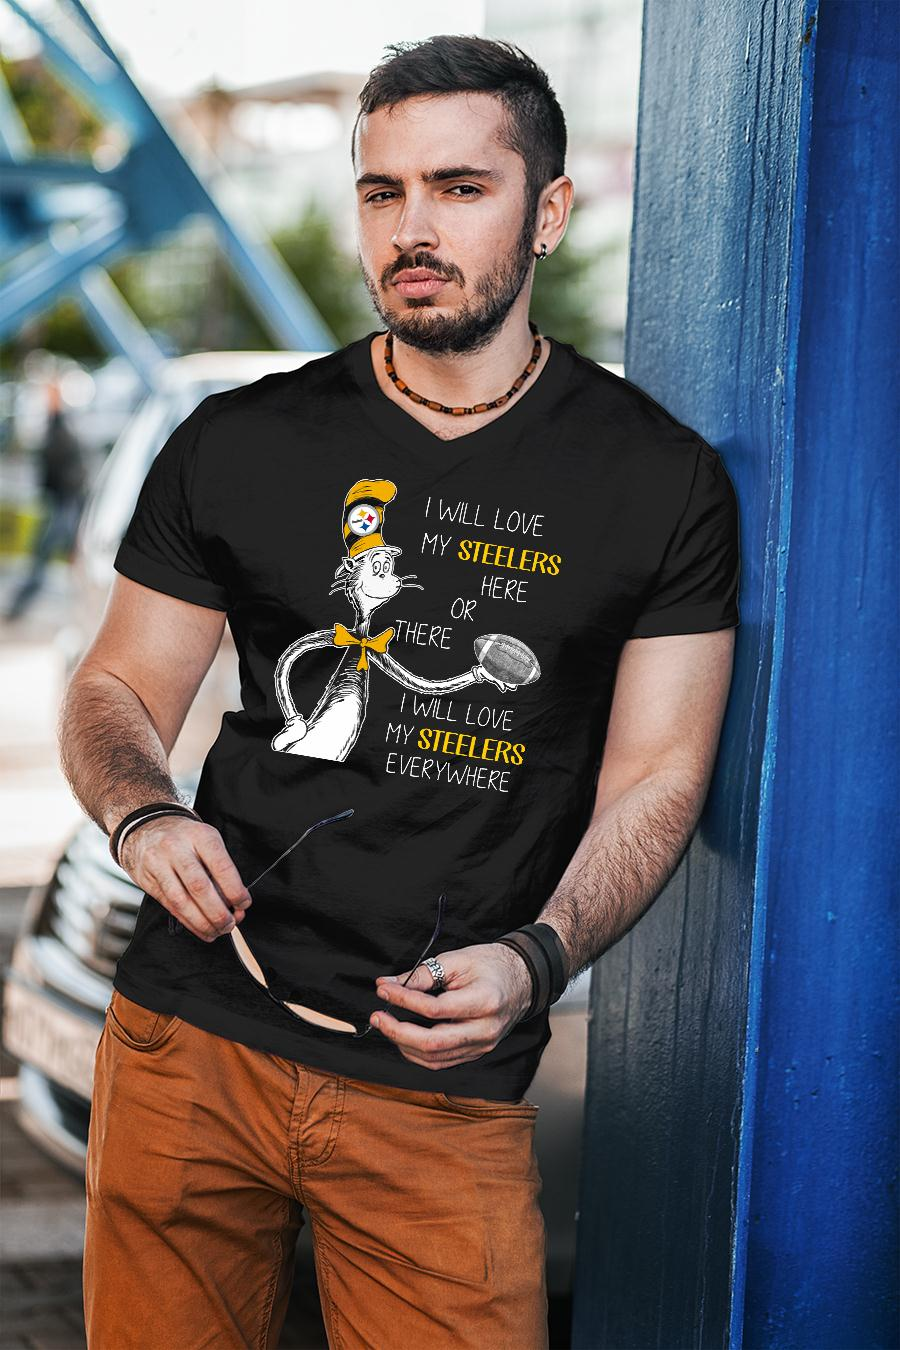 Dr Seuss I will love my Steelers here or there I will love my Steelers TShirt unisex